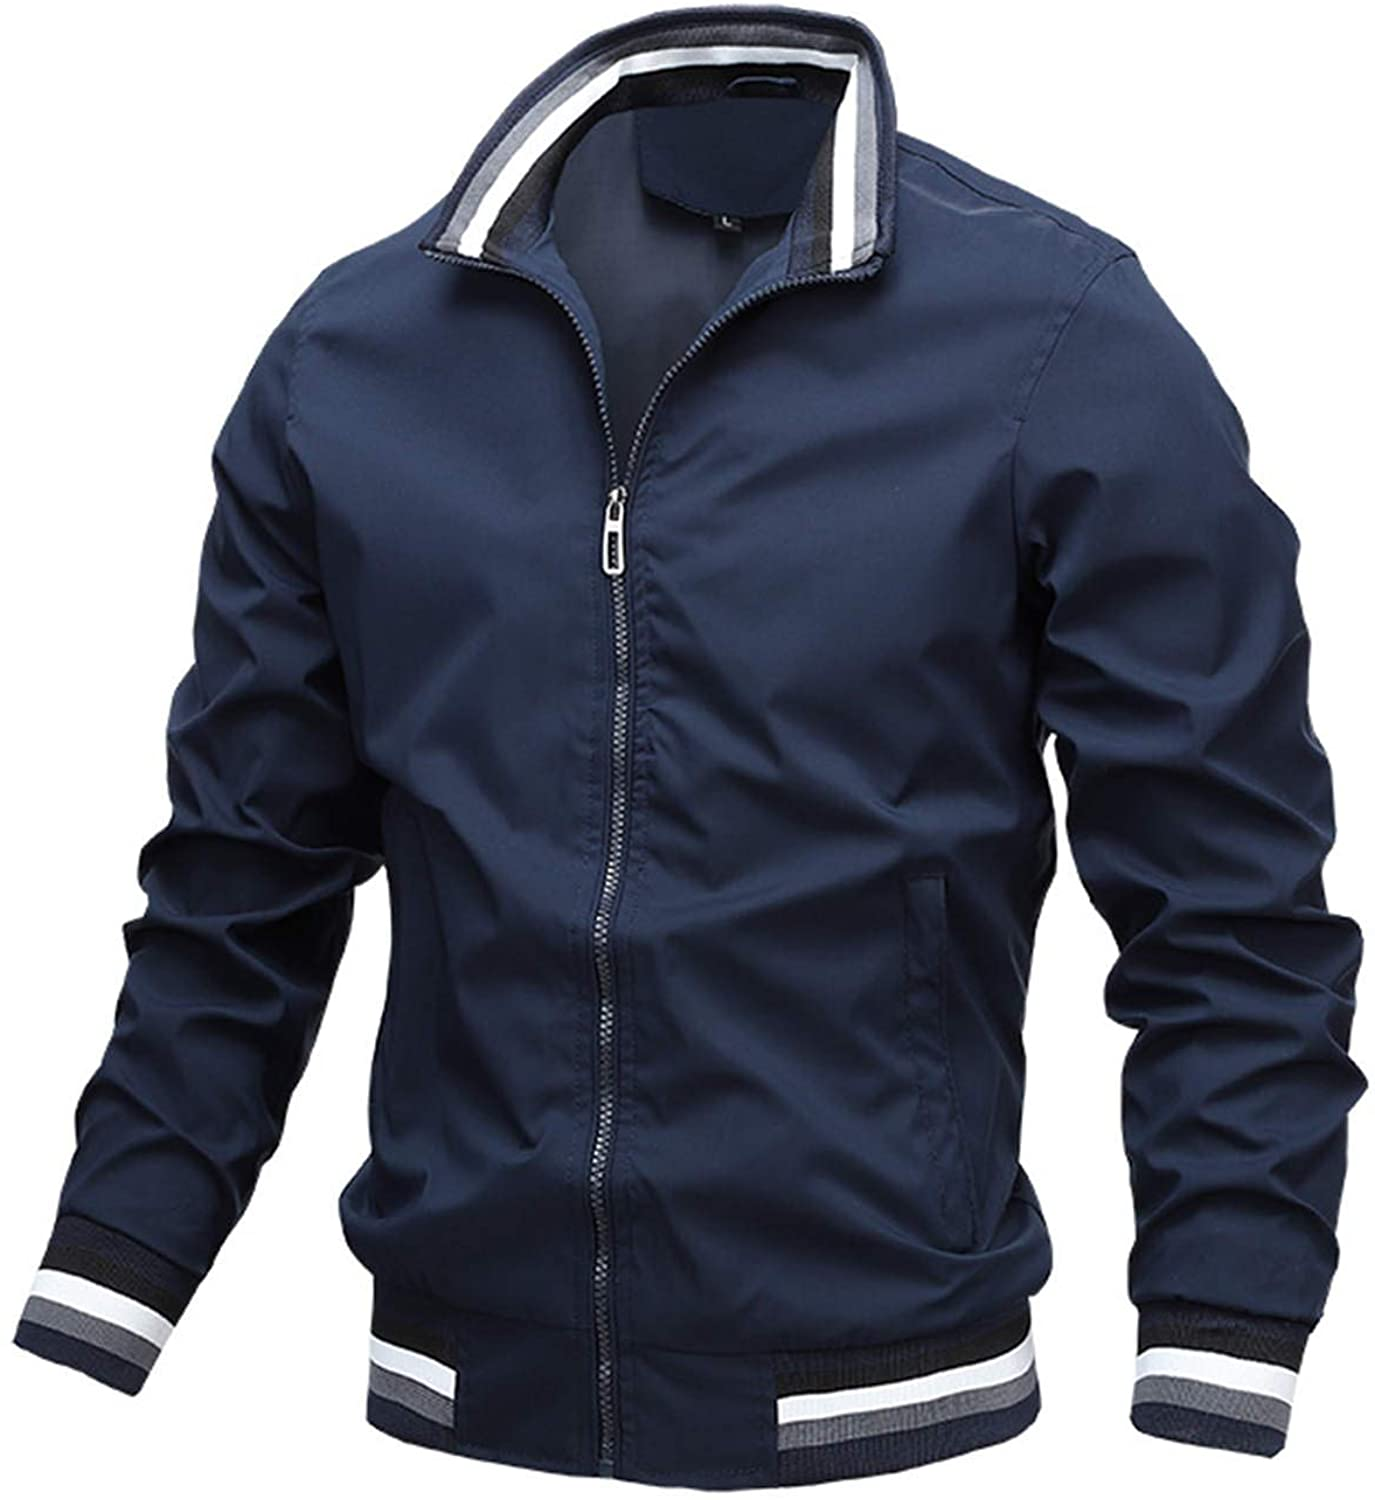 Men's Military Jacket Lightweight Cotton Stand Collar Casual Utility Coat Outwear Overcoat